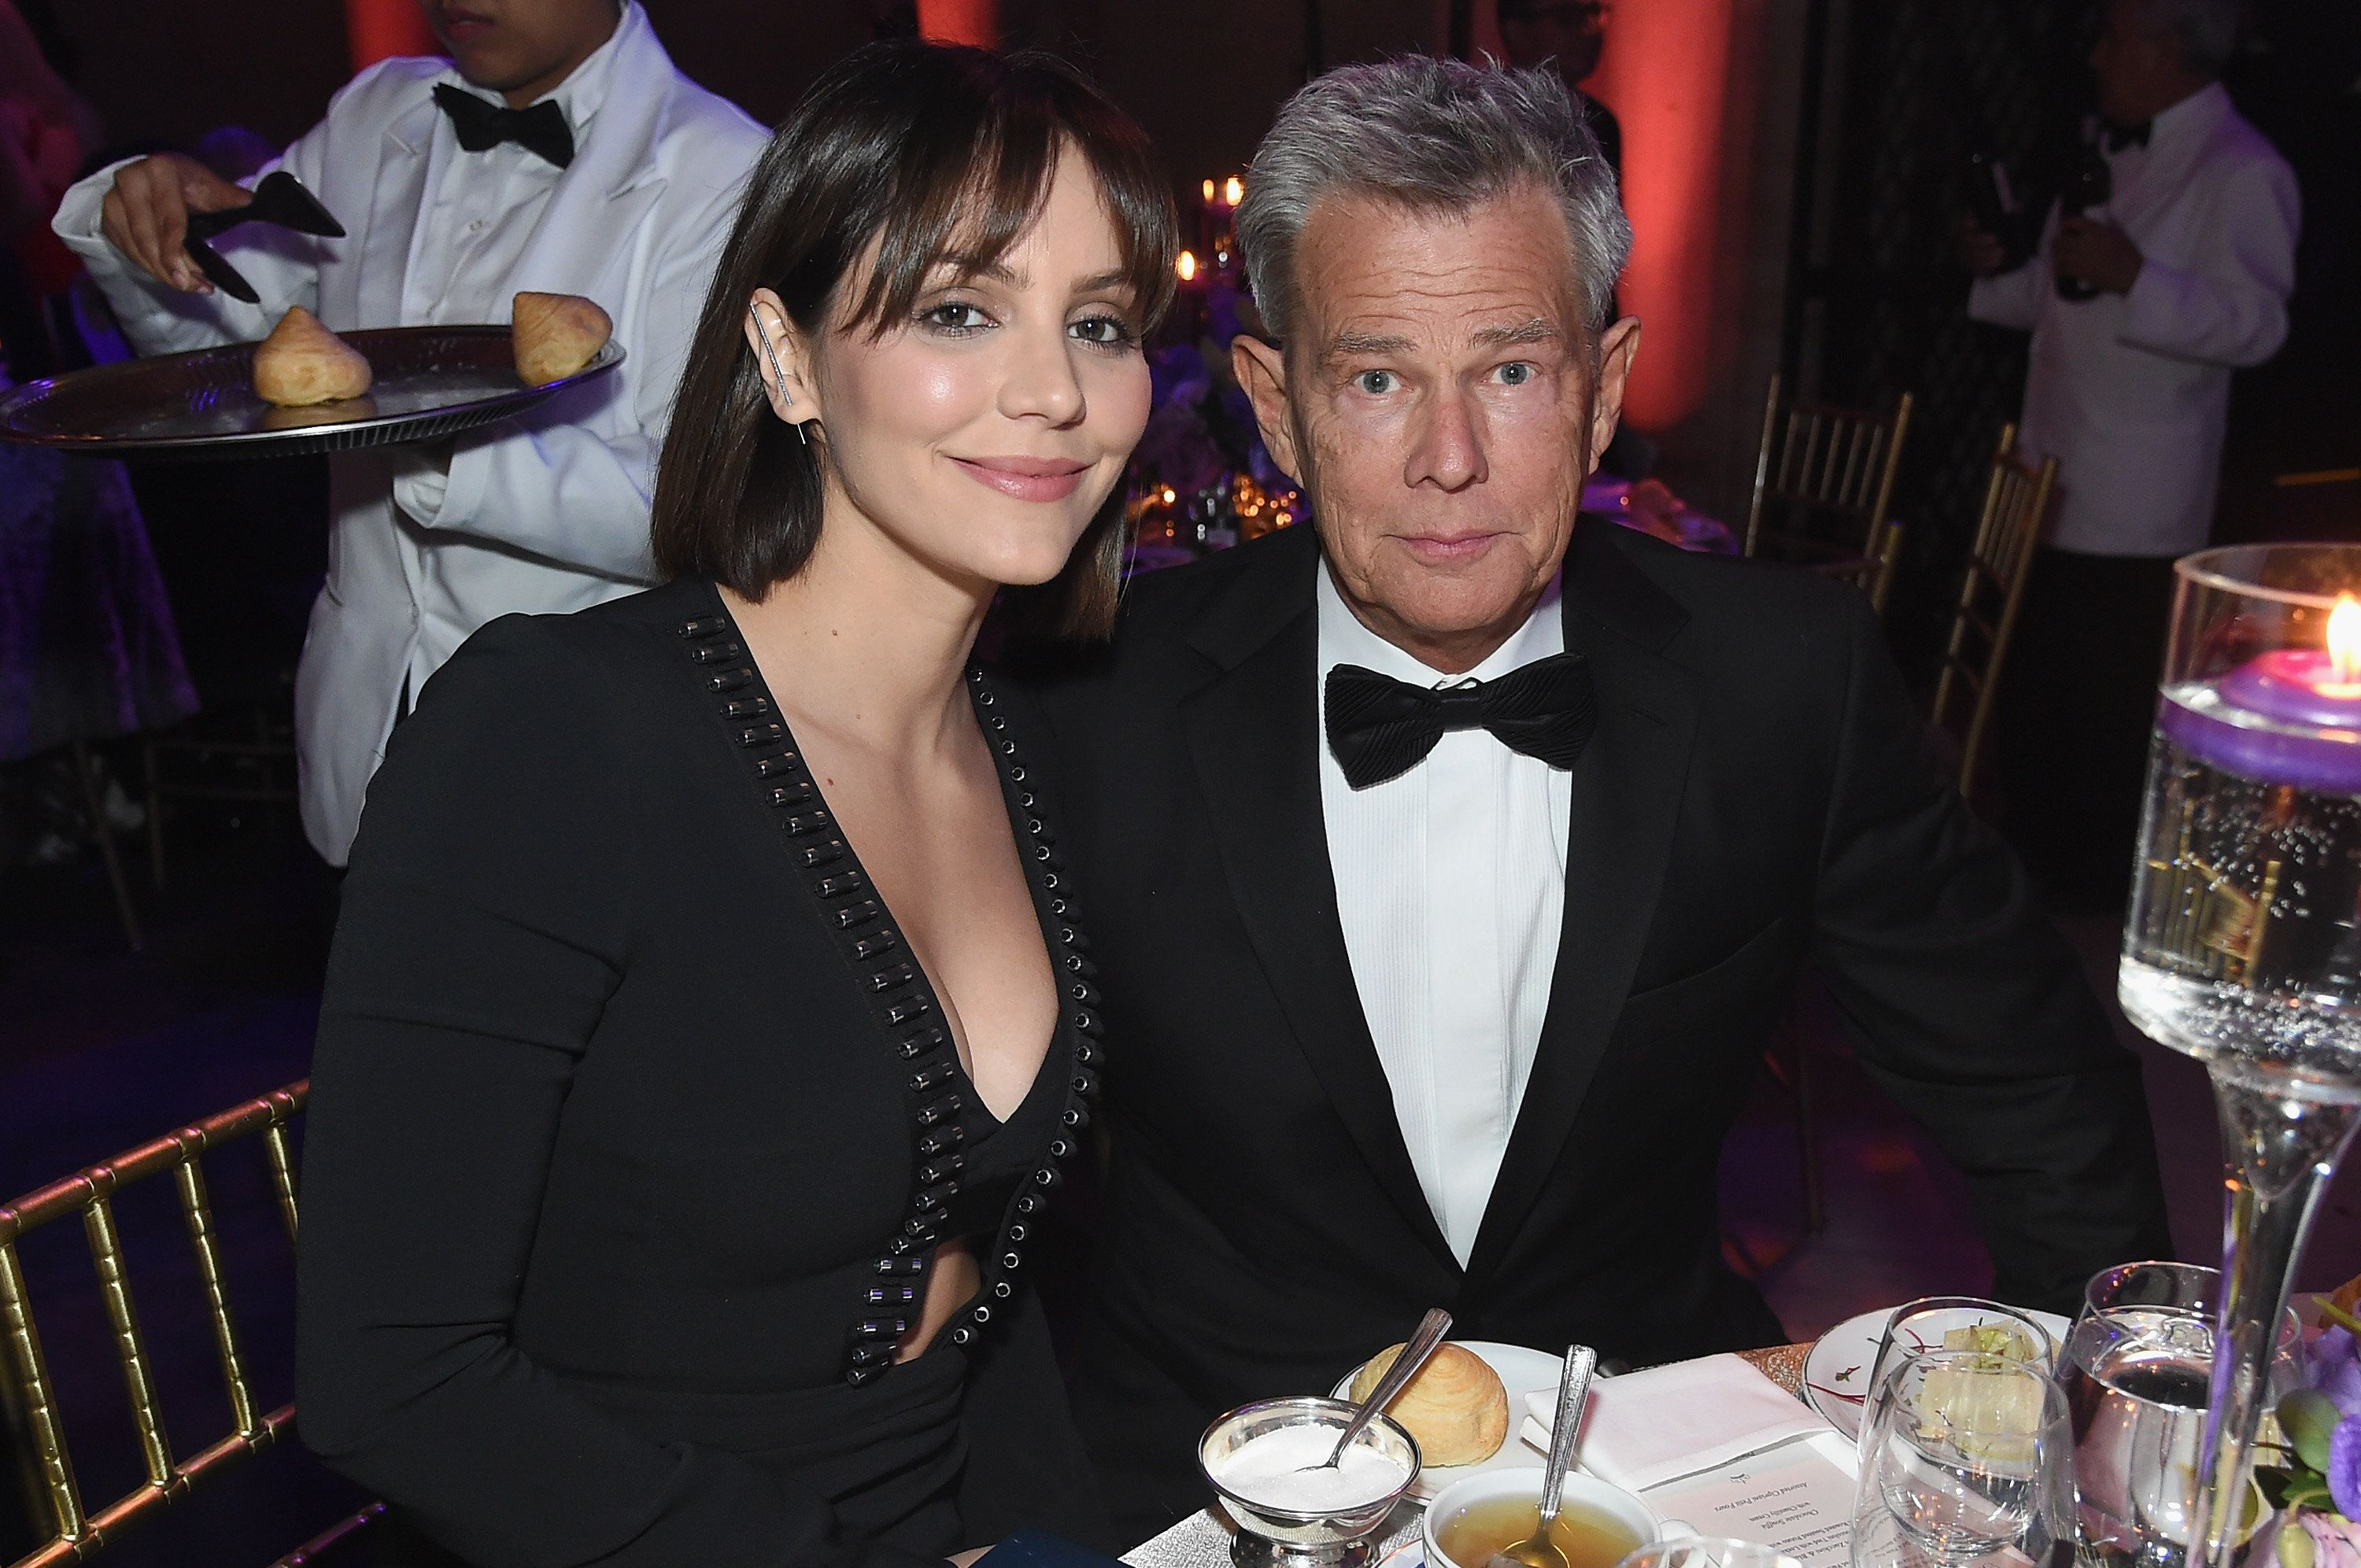 NEW YORK, NY - OCTOBER 16:  Katharine McPhee and David Foster attend the 2018 Princess Grace Awards Gala at Cipriani 25 Broadway on October 16, 2018 in New York City.  (Photo by Jamie McCarthy/Getty Images for Princess Grace Foundation-USA)